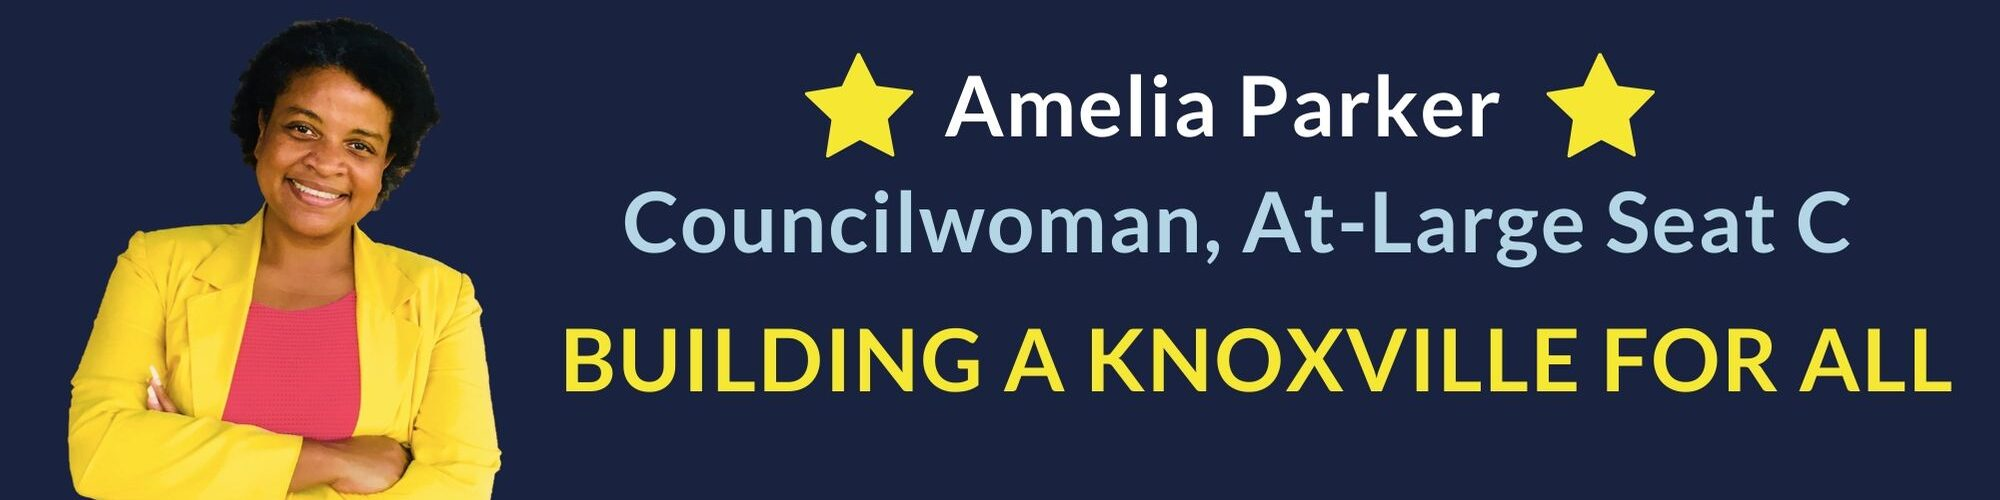 The Office of Councilwoman Amelia Parker